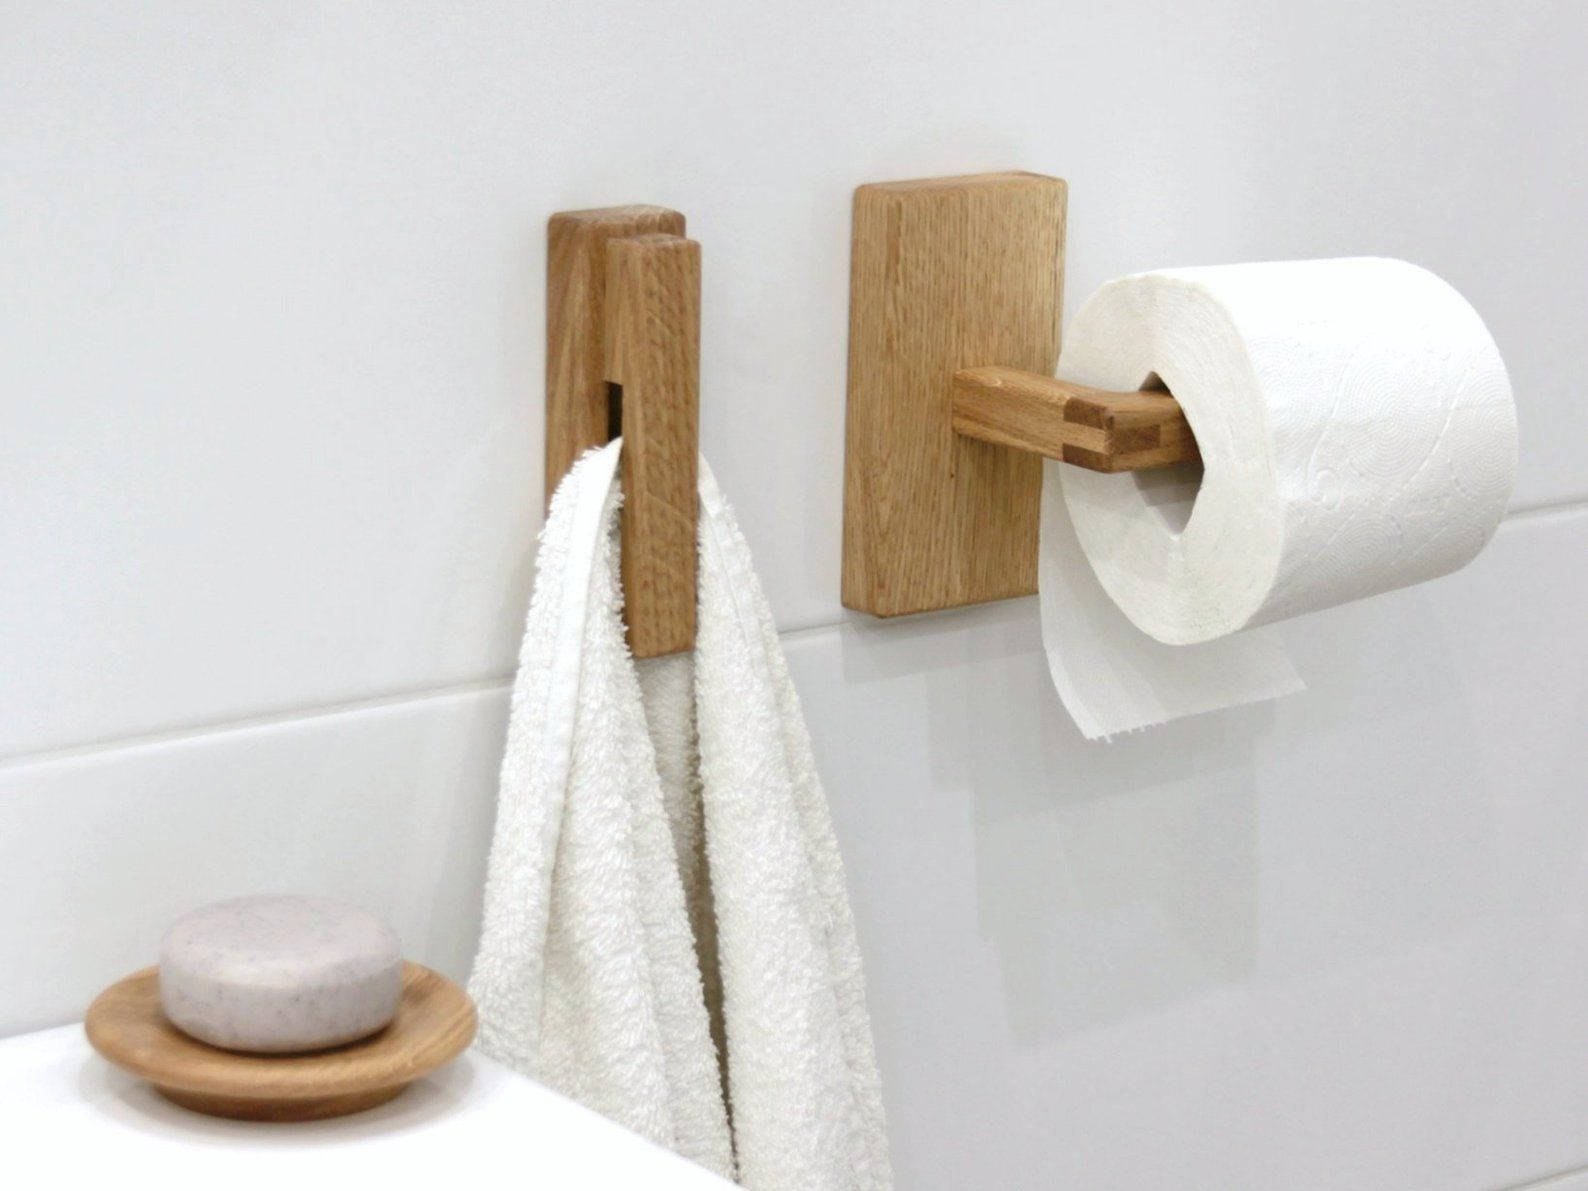 Wood Towel Holder Oak Toilet Paper Holder Soap Dish Etsy Towel Holder Toilet Paper Holder Wood Bathroom